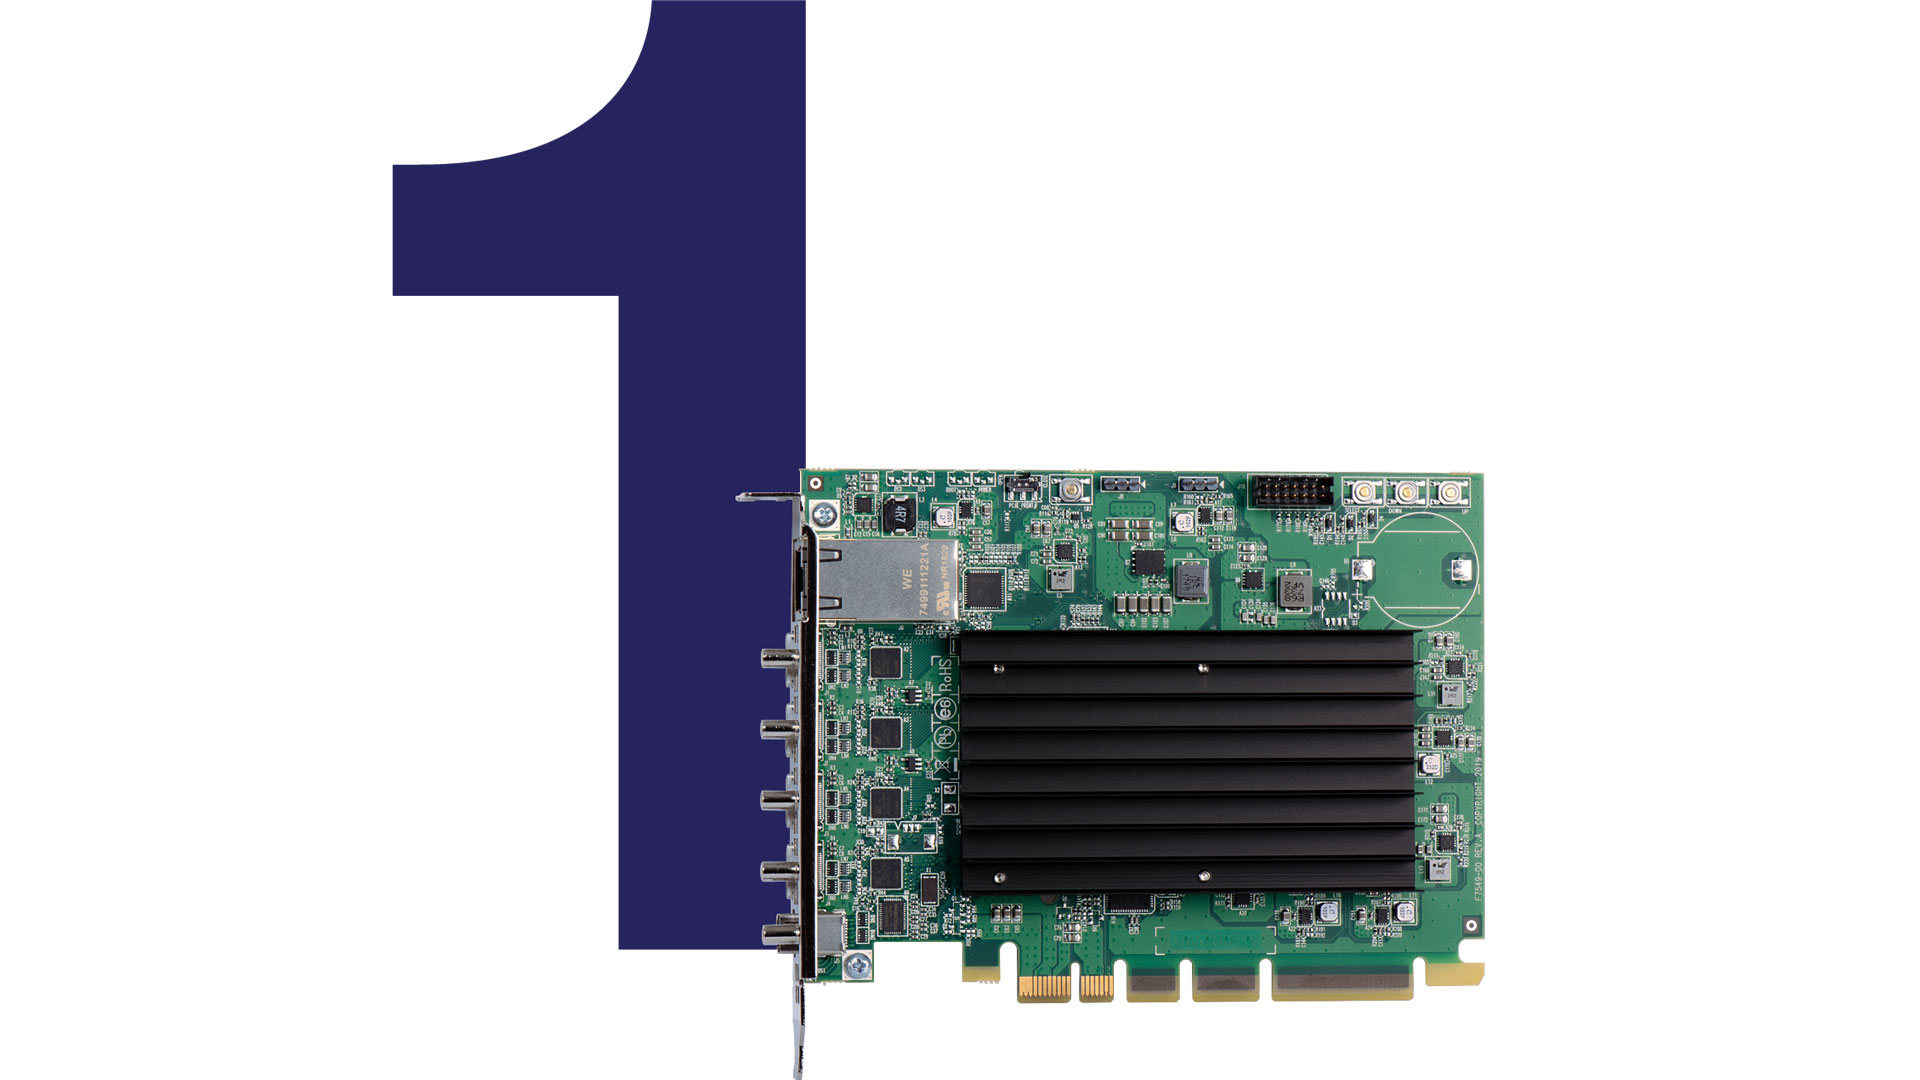 Connect using Mini DisplayPort 1.2 and 4 HDMI outputs